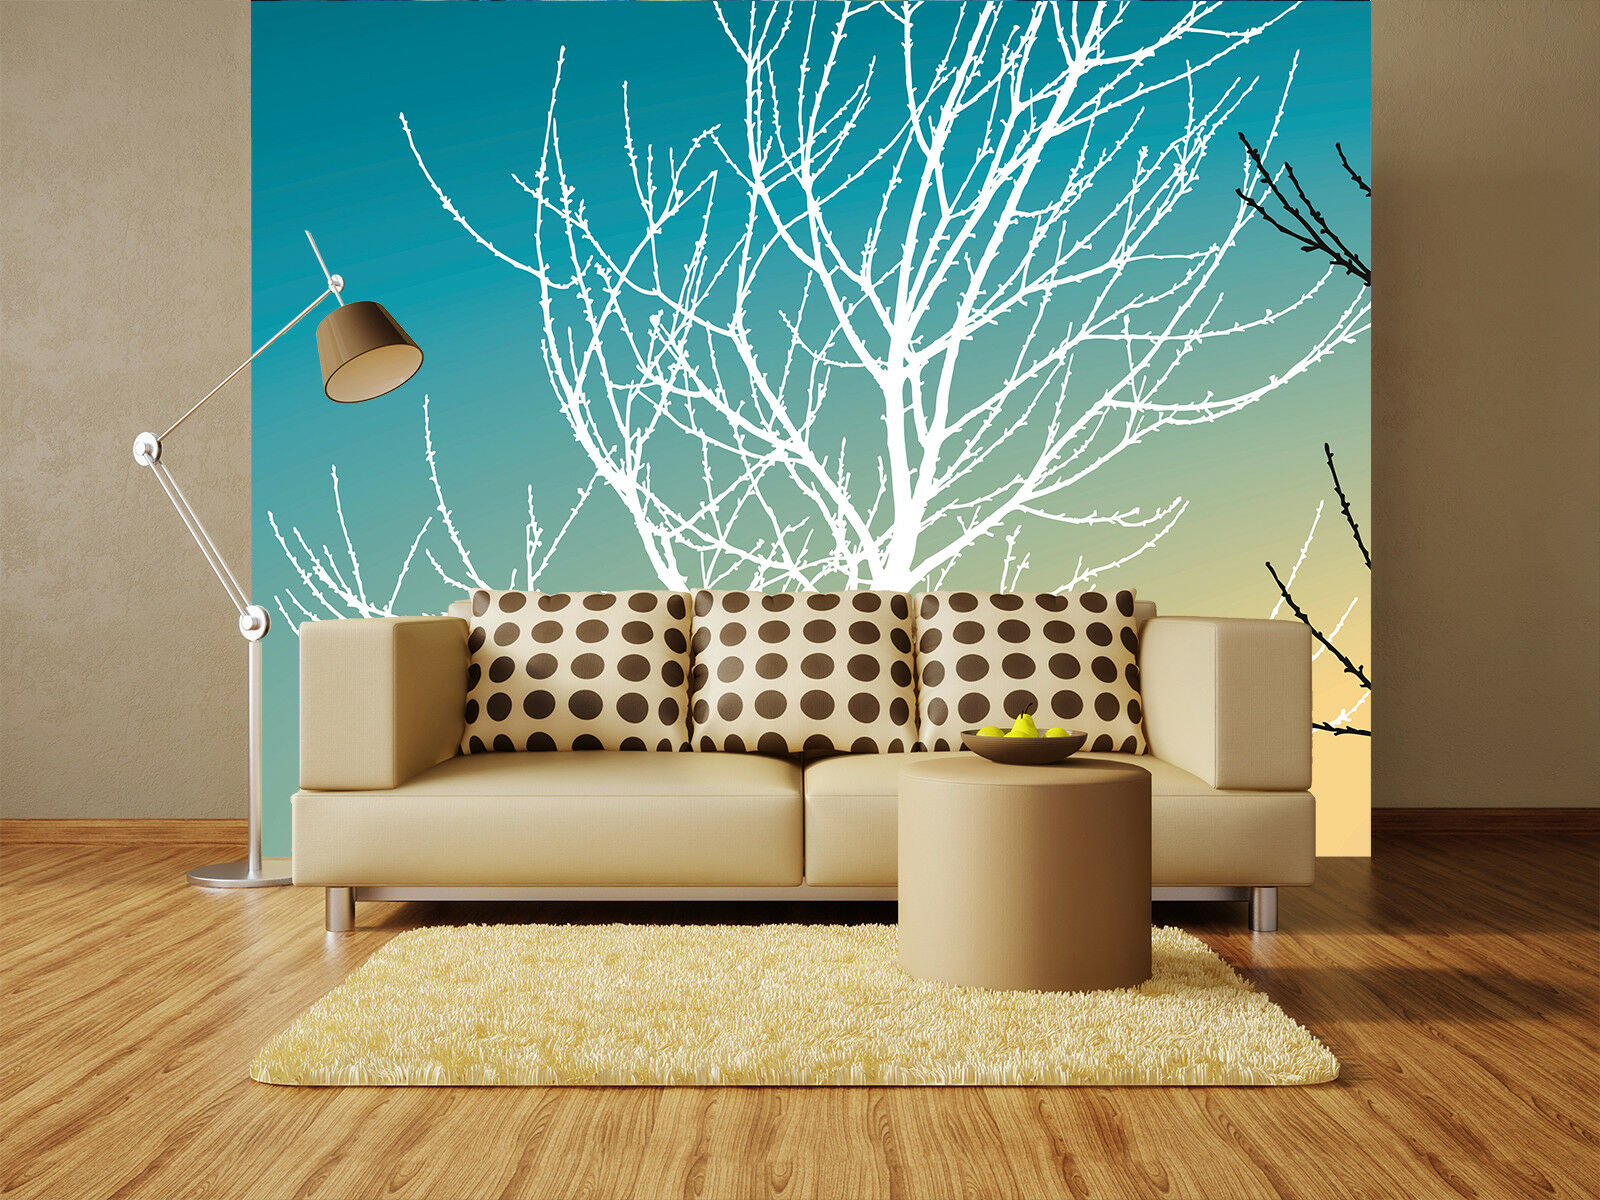 3D Branches 4125 Wallpaper Murals Wall Print Wallpaper Mural AJ WALL UK Lemon